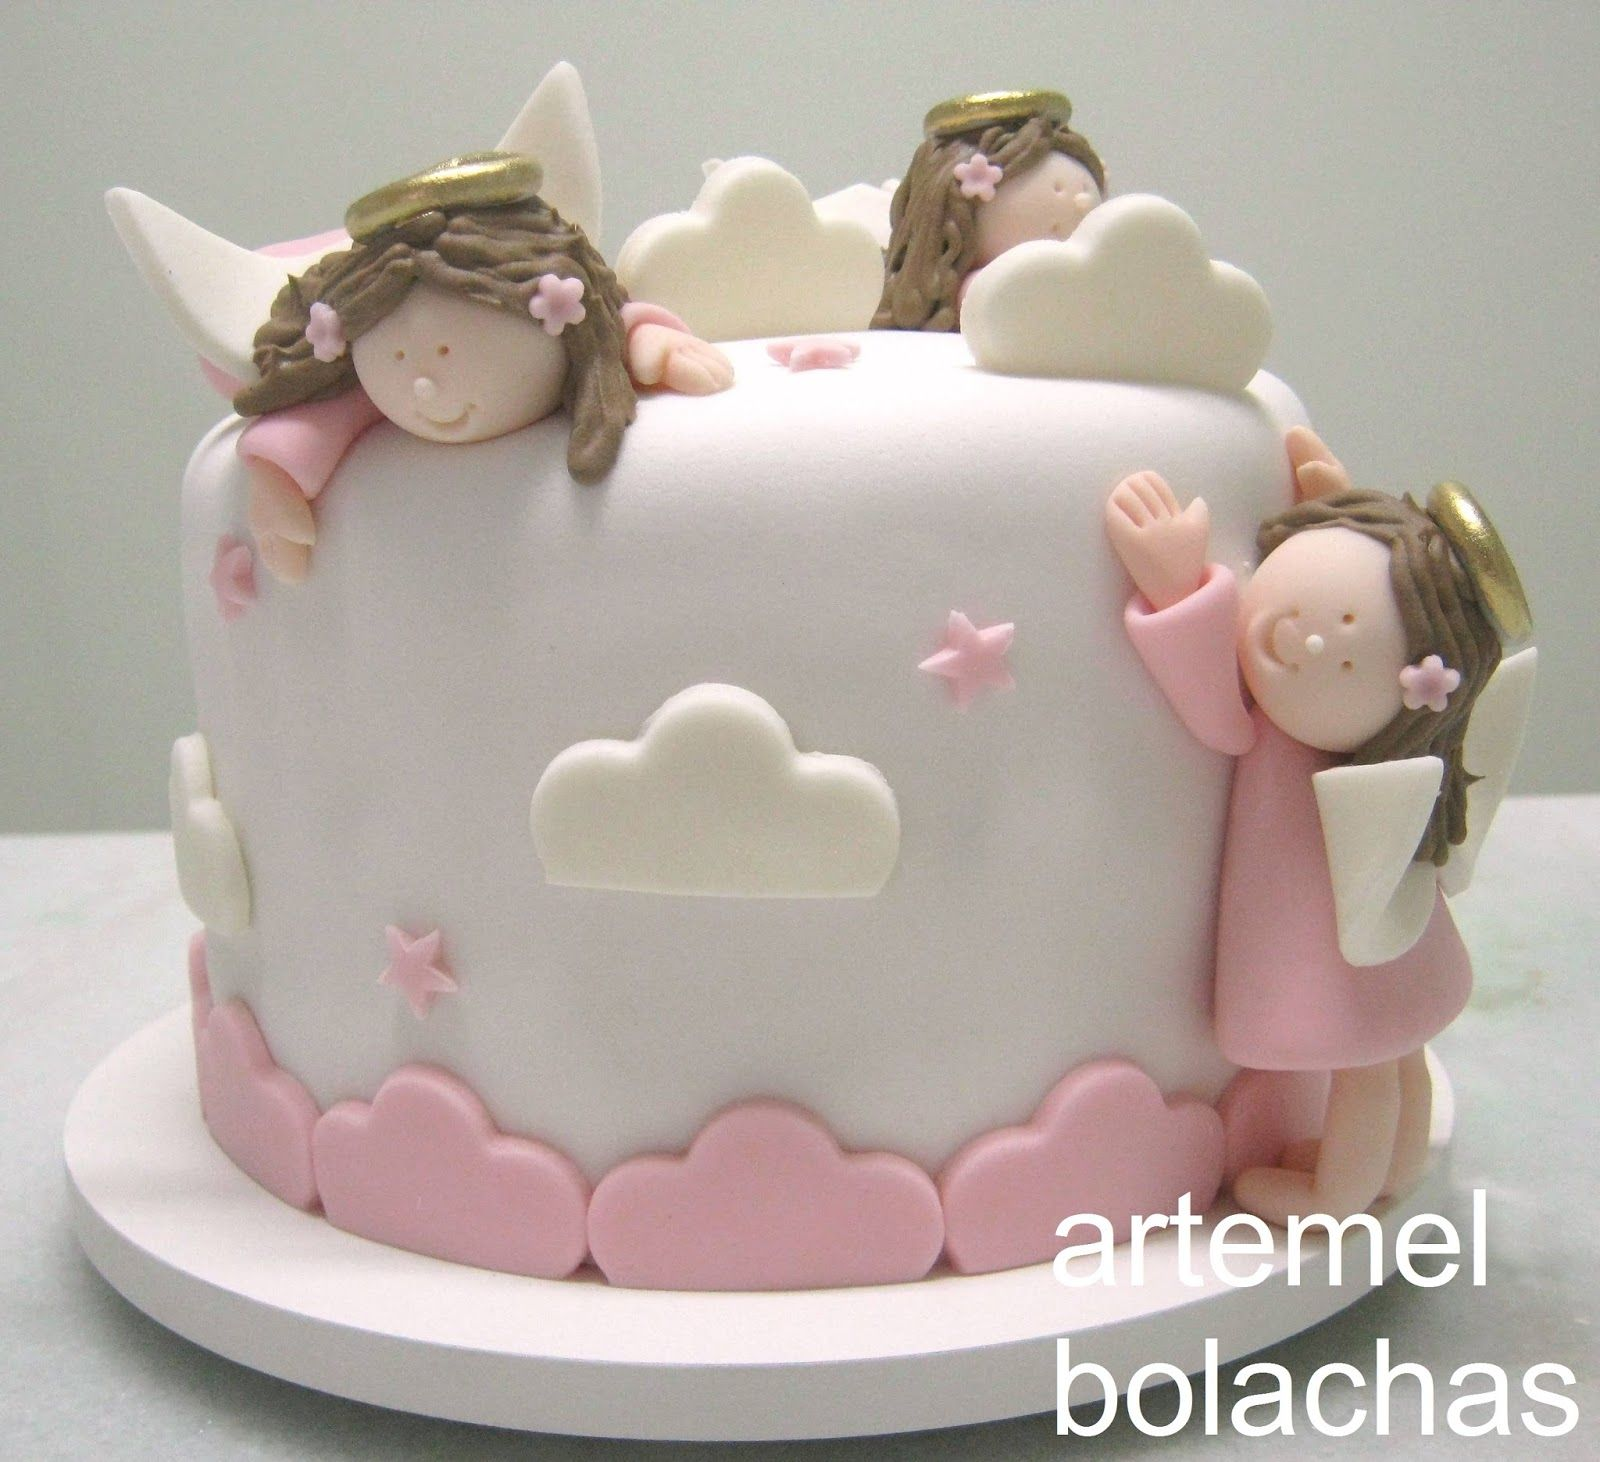 Pin By Ceren Soyer On Pastalar In 2018 Pinterest Cake Babies